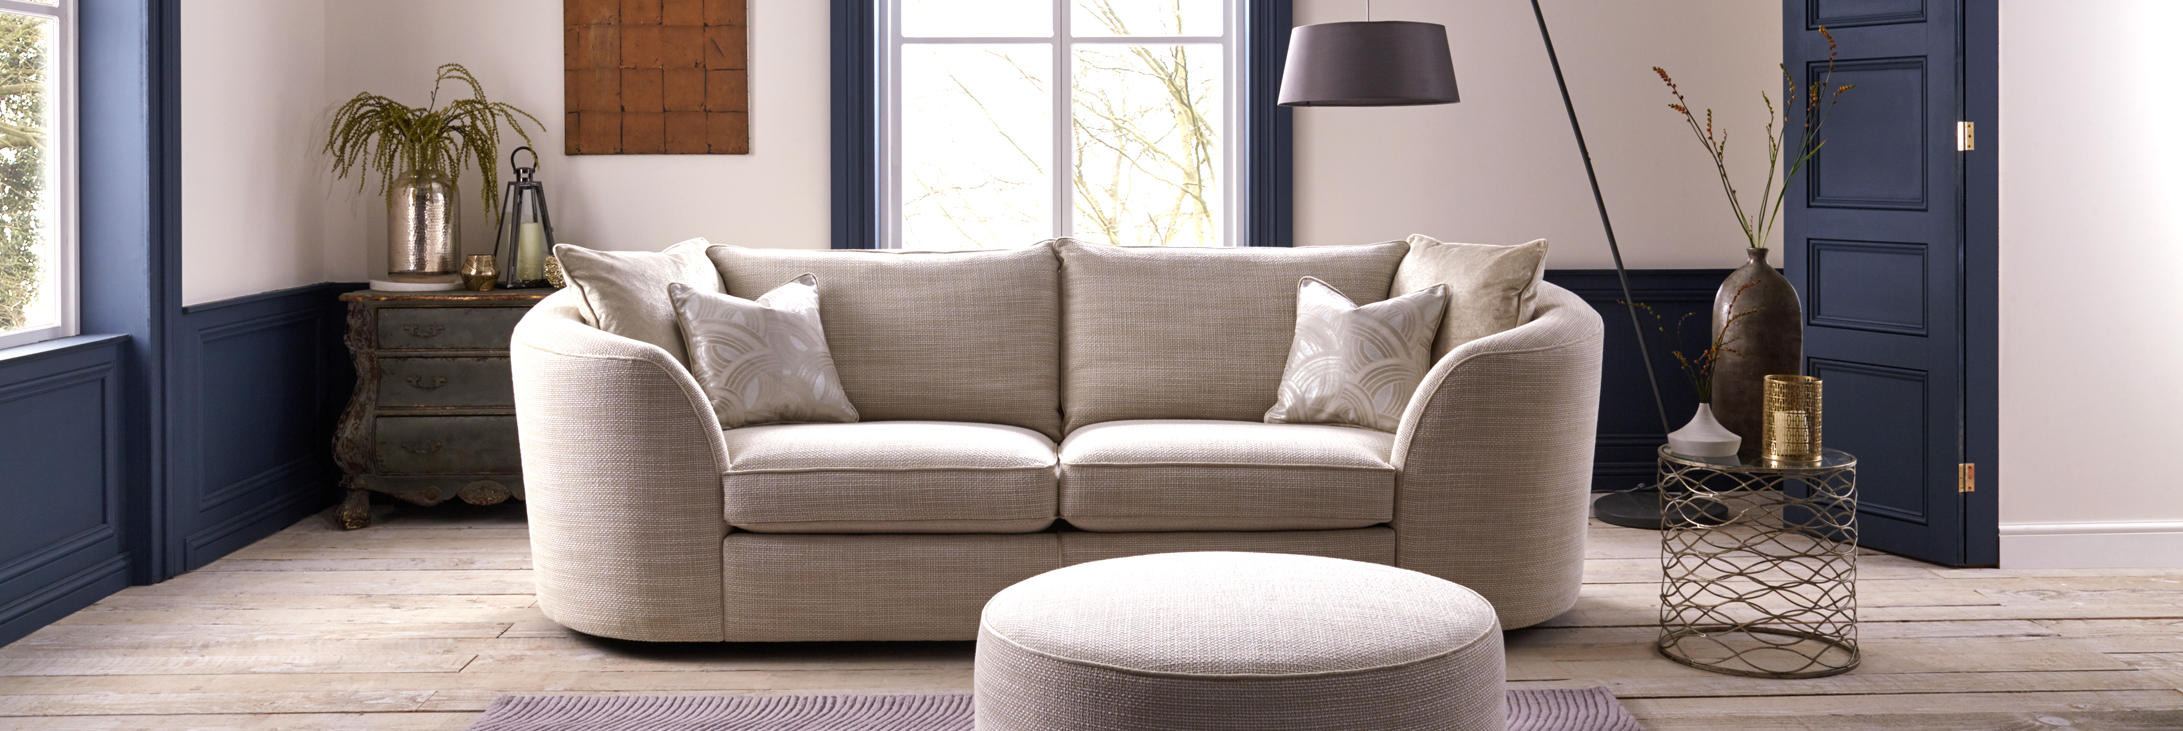 Get The Look | Living Room Style